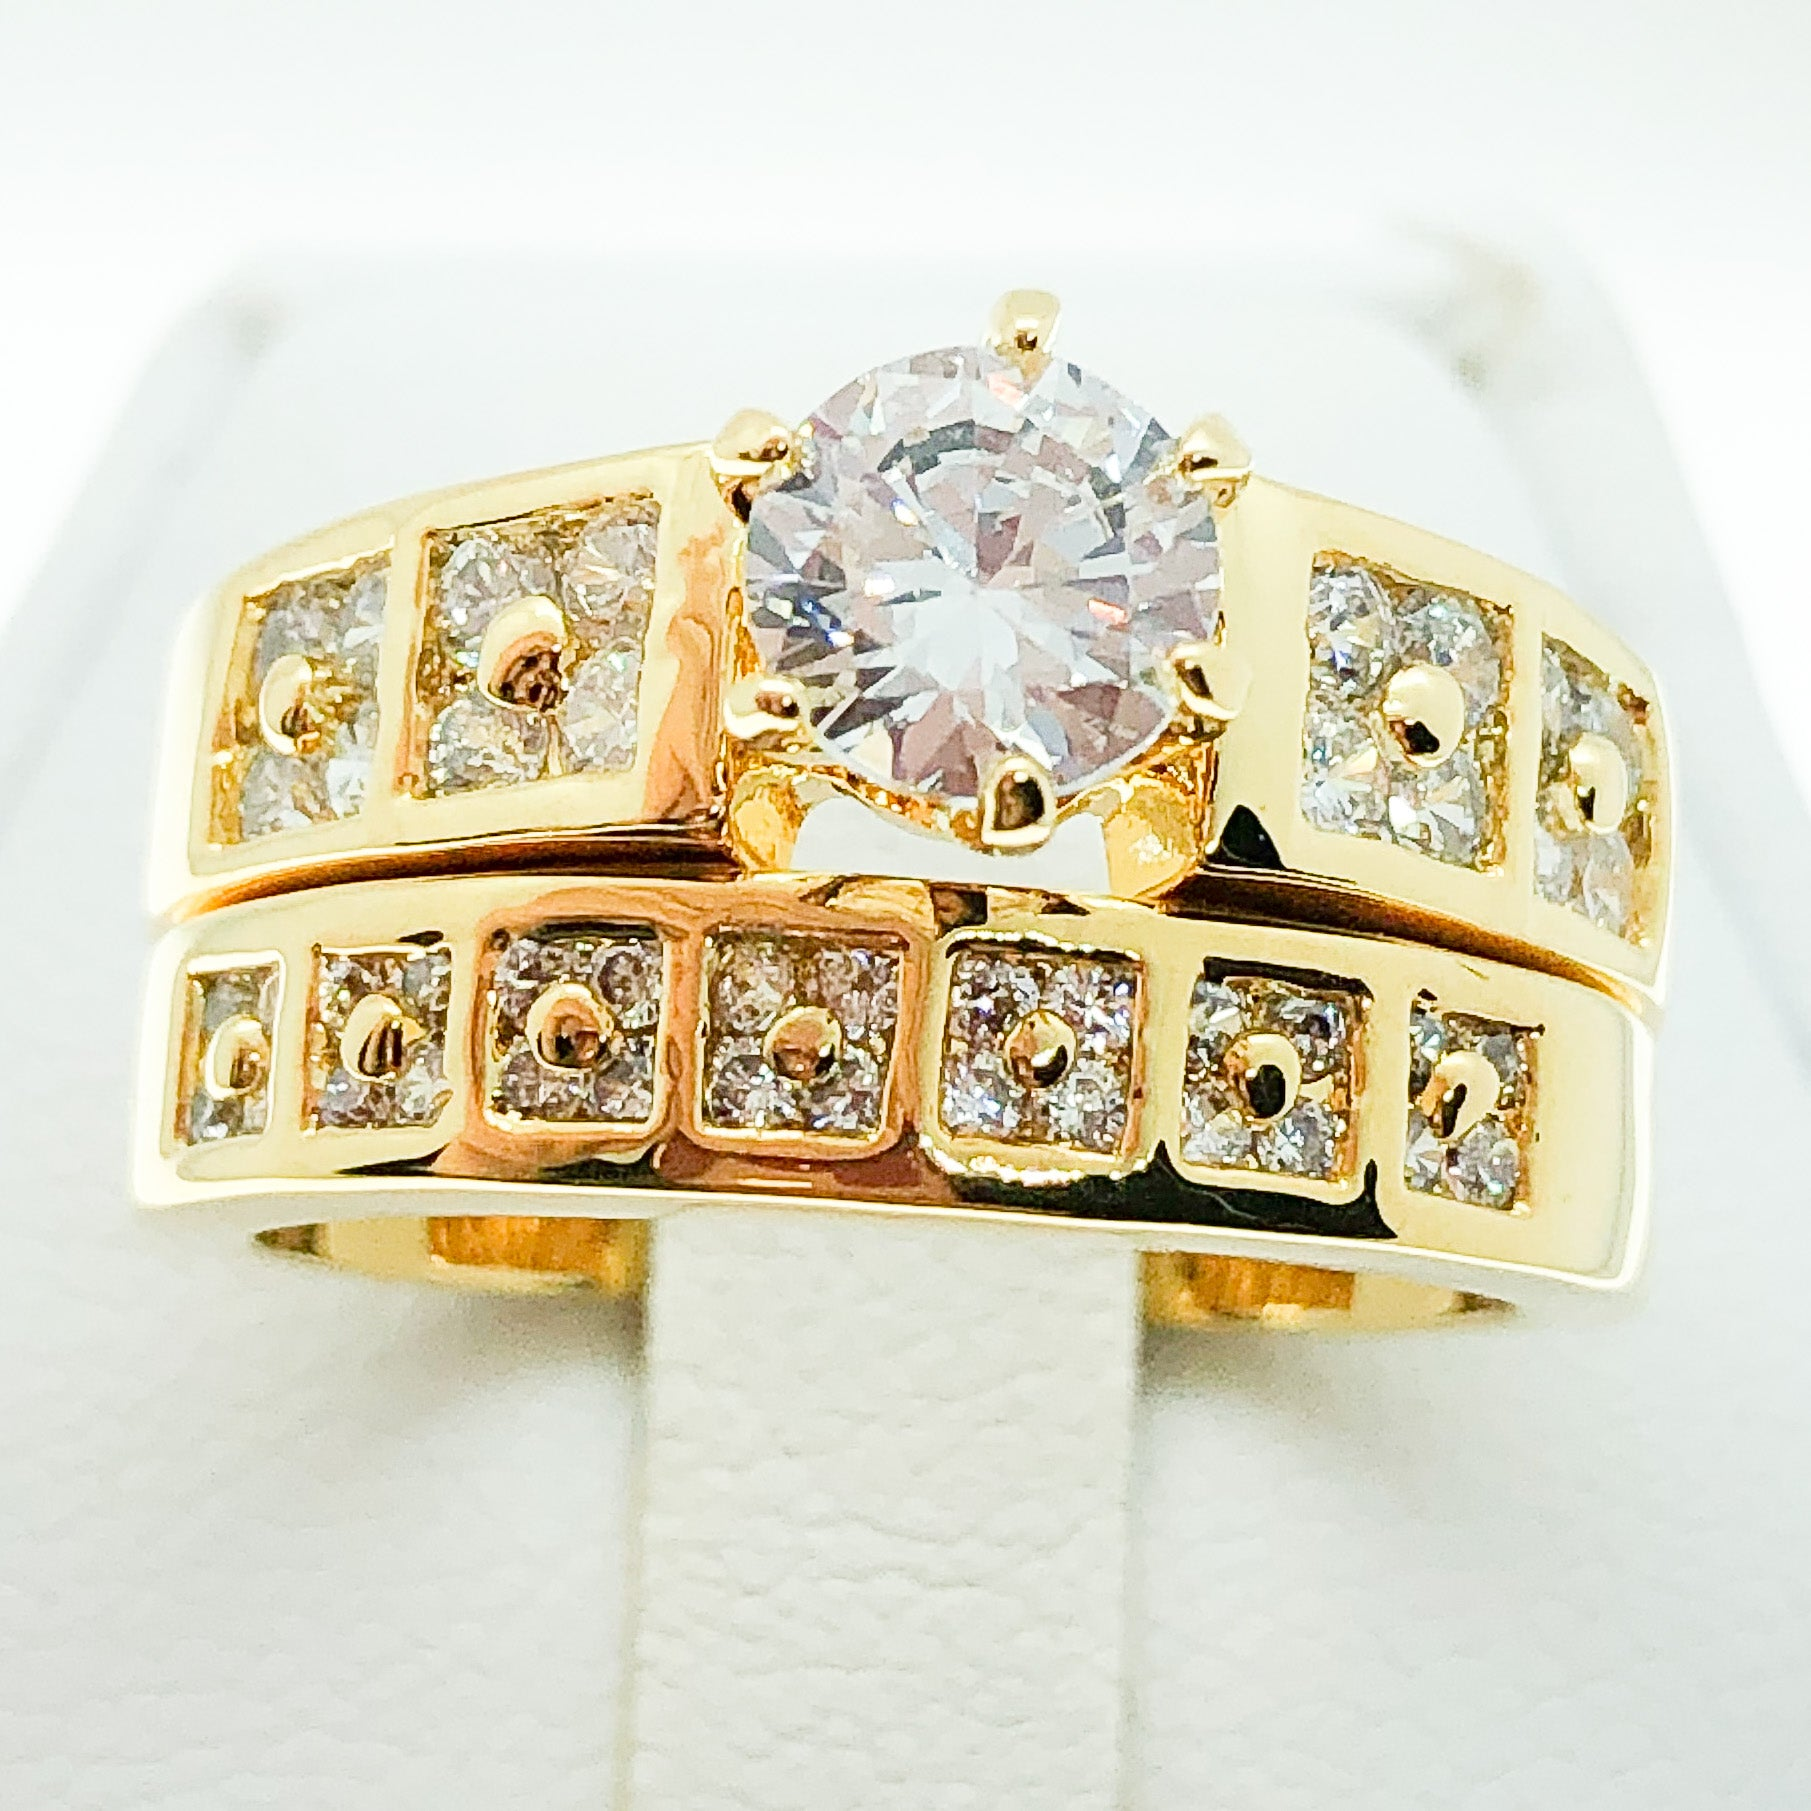 ID:R3590 Women Vintage Jewelry 18K Yellow Gold GF Excellent Engagement Wedding Diamonique Bridal Band Ring 2pcs/Set